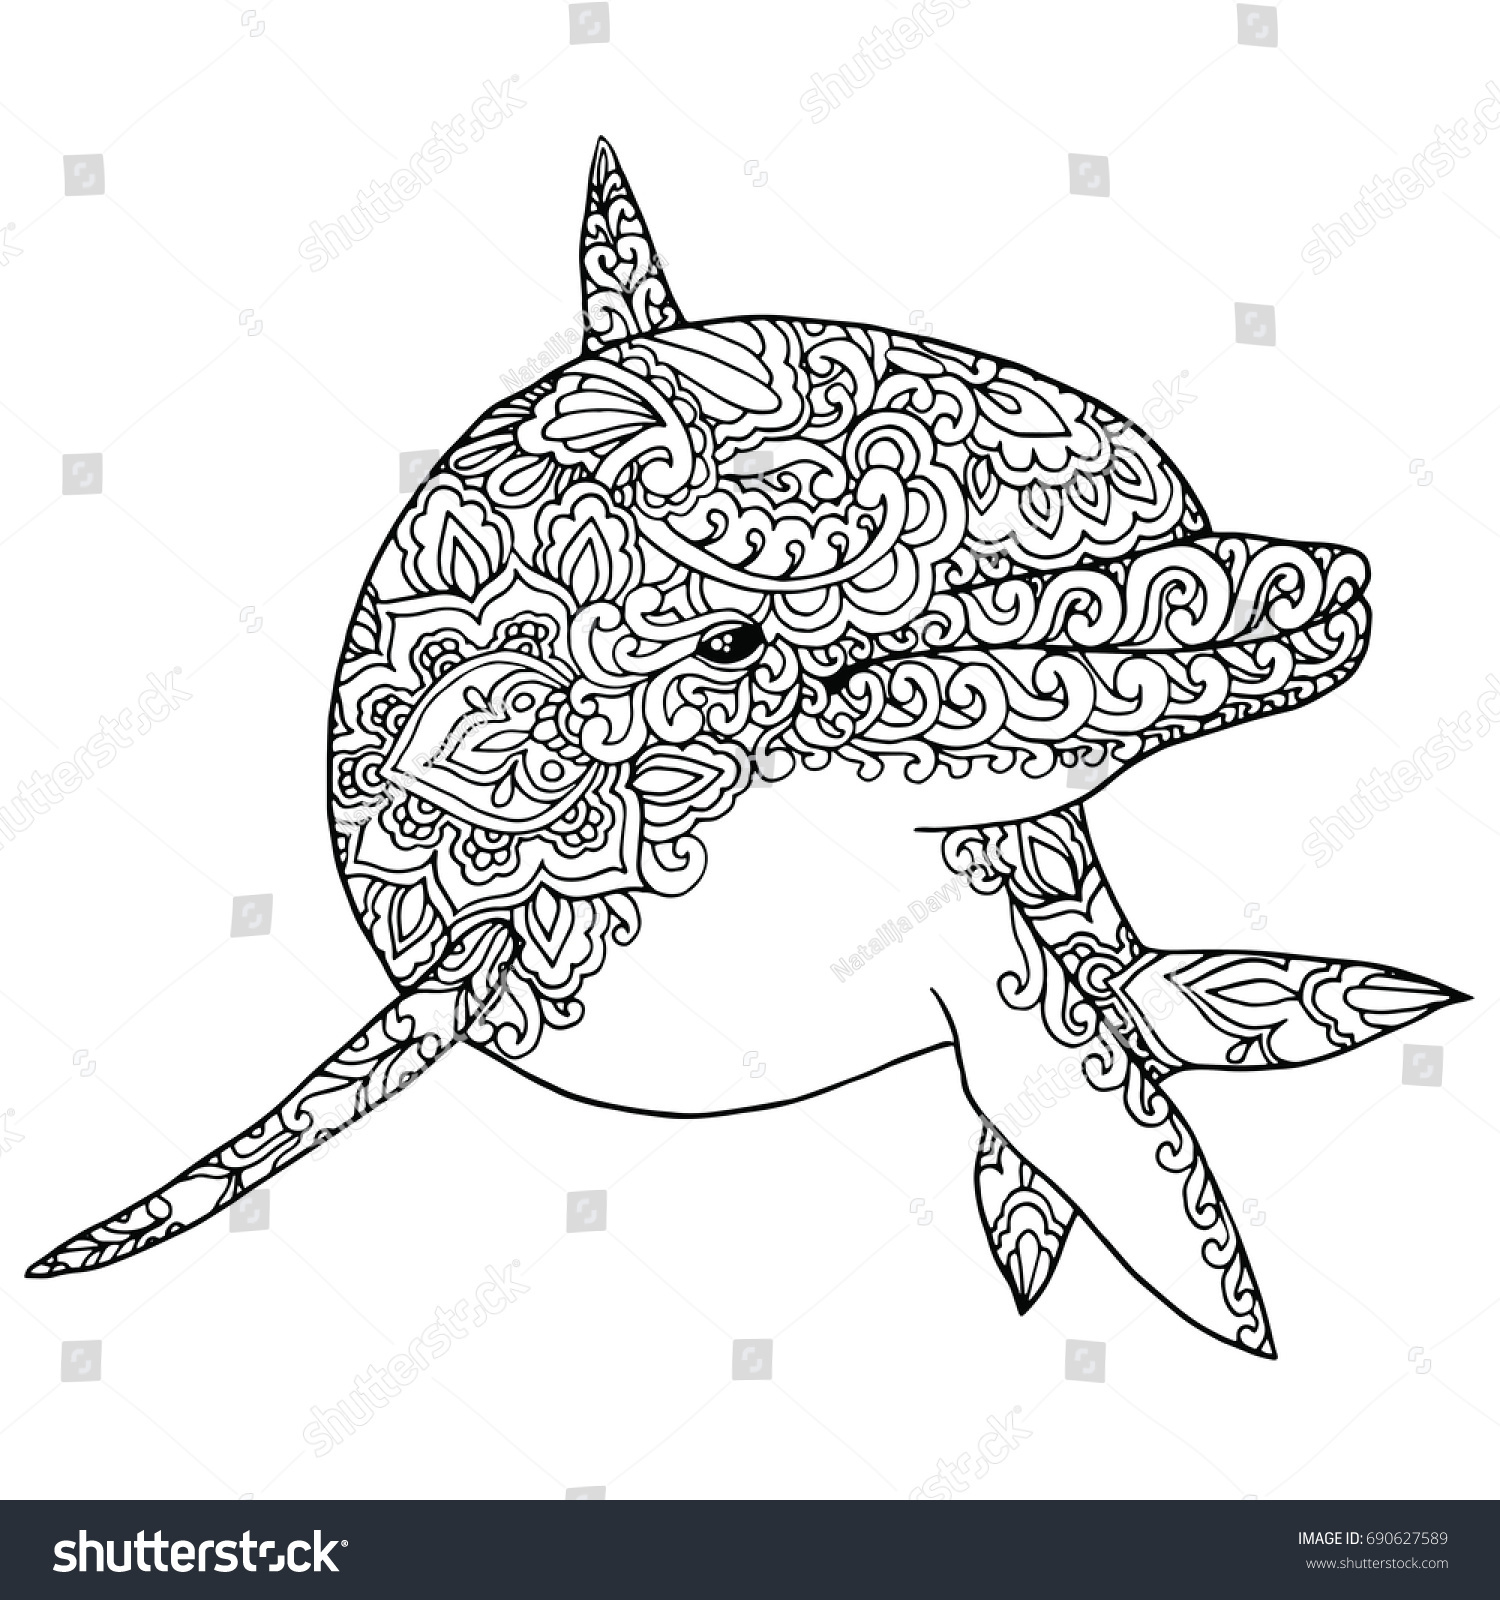 Abstract Dolphin Coloring Pages : Zentangle doodle patterned fantasy dolphin isolated stock